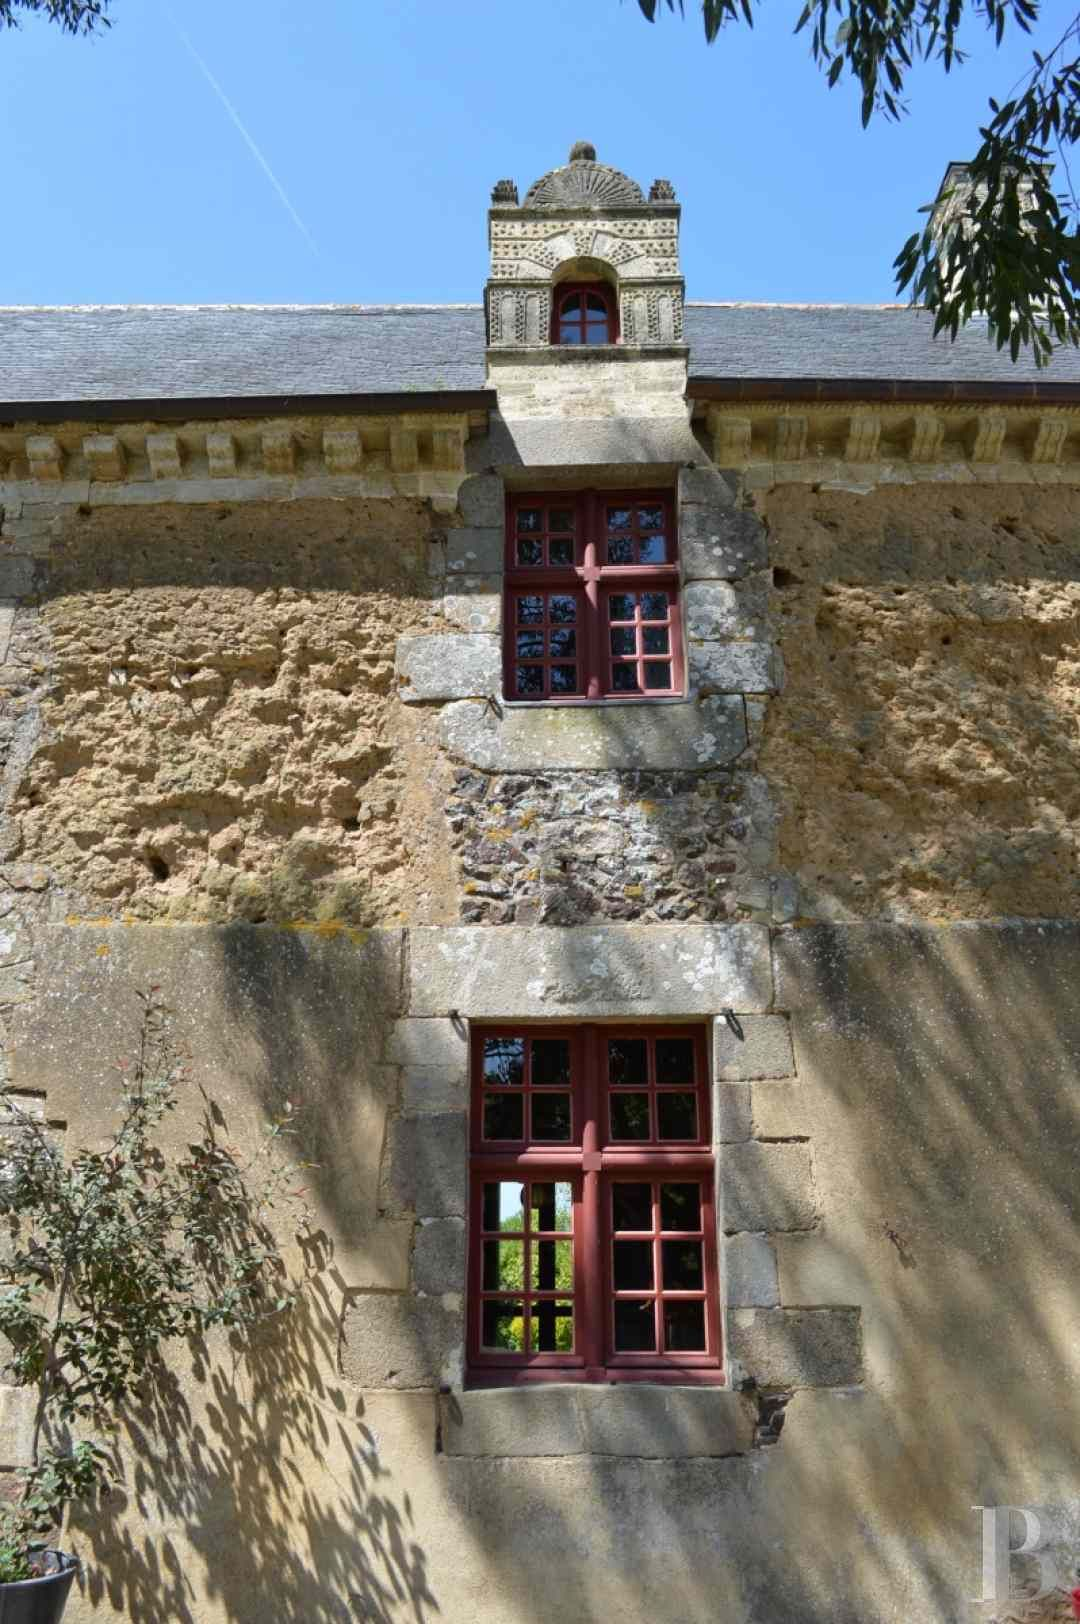 https://www.patrice-besse.co.uk/France-mansions-for-sale/brittany/property-rennes-saint-malo/